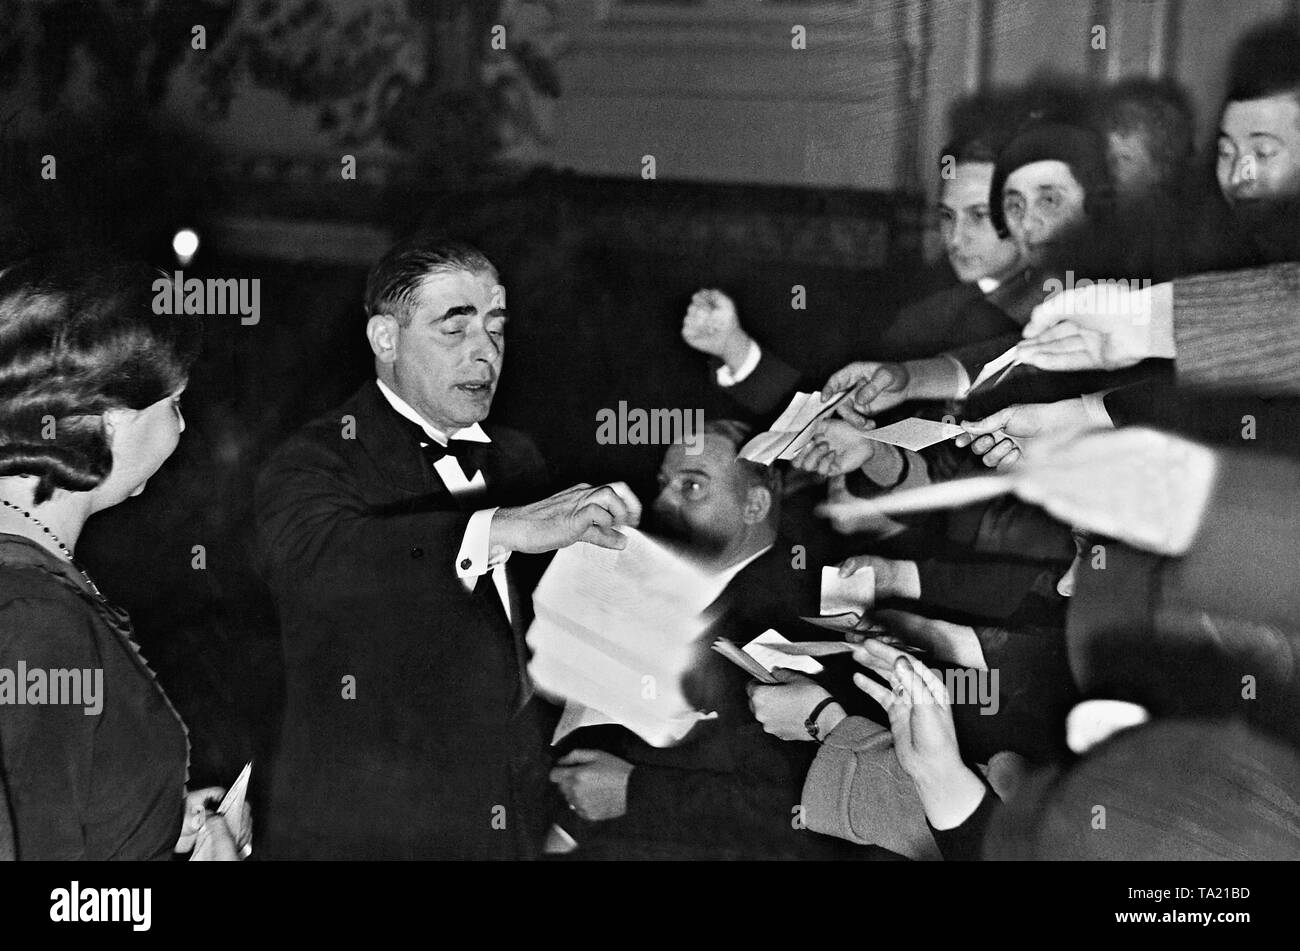 The clairvoyant Erik Jan Hanussen is surrounded by autograph hunters. - Stock Image